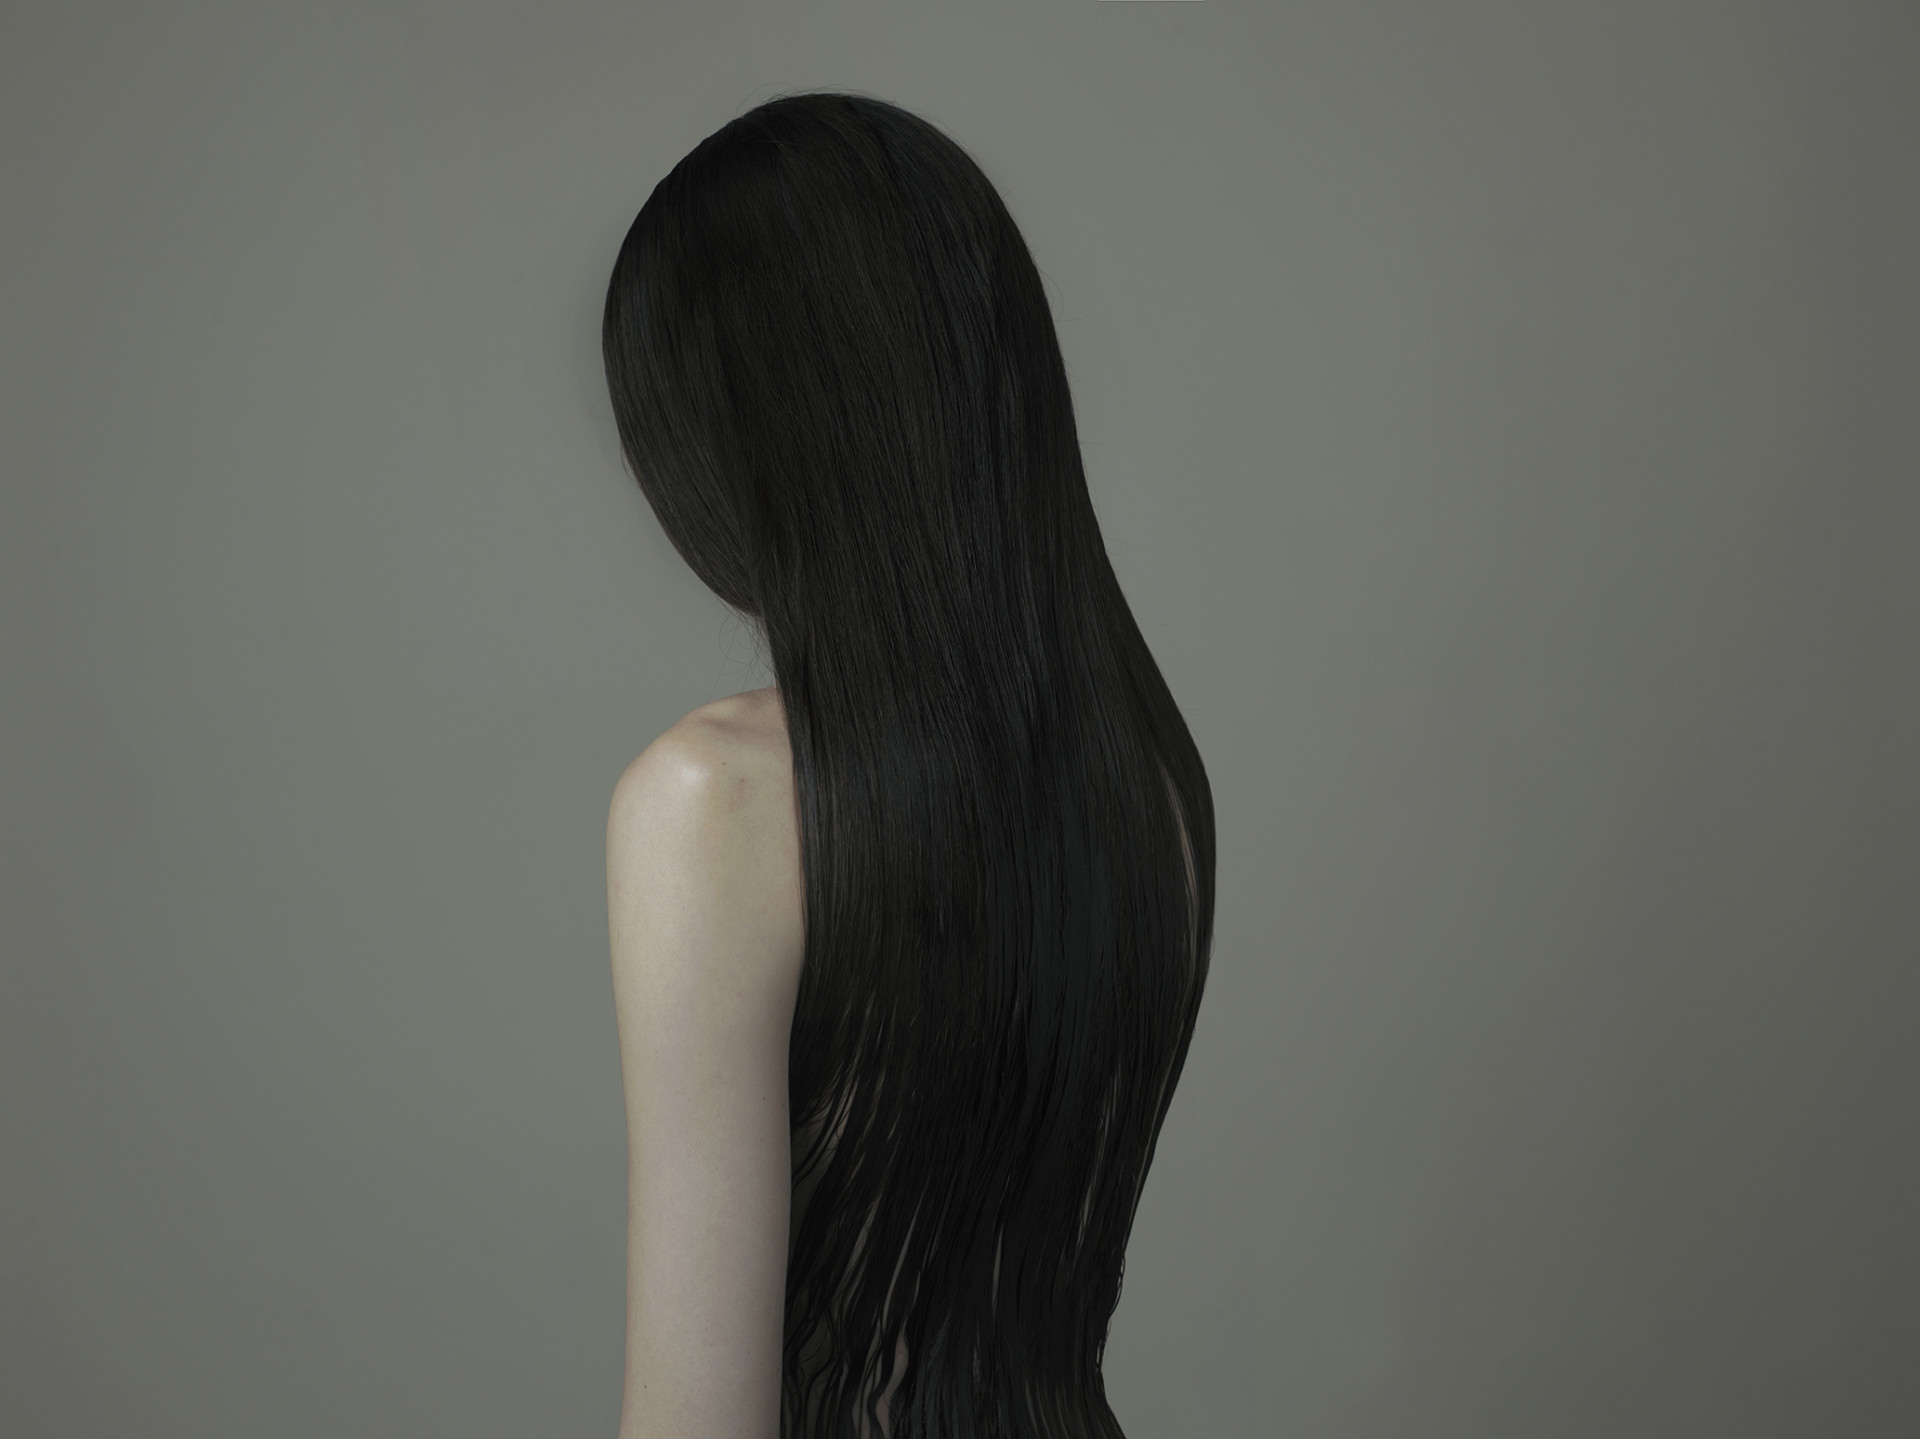 evelyn bencicova faceless